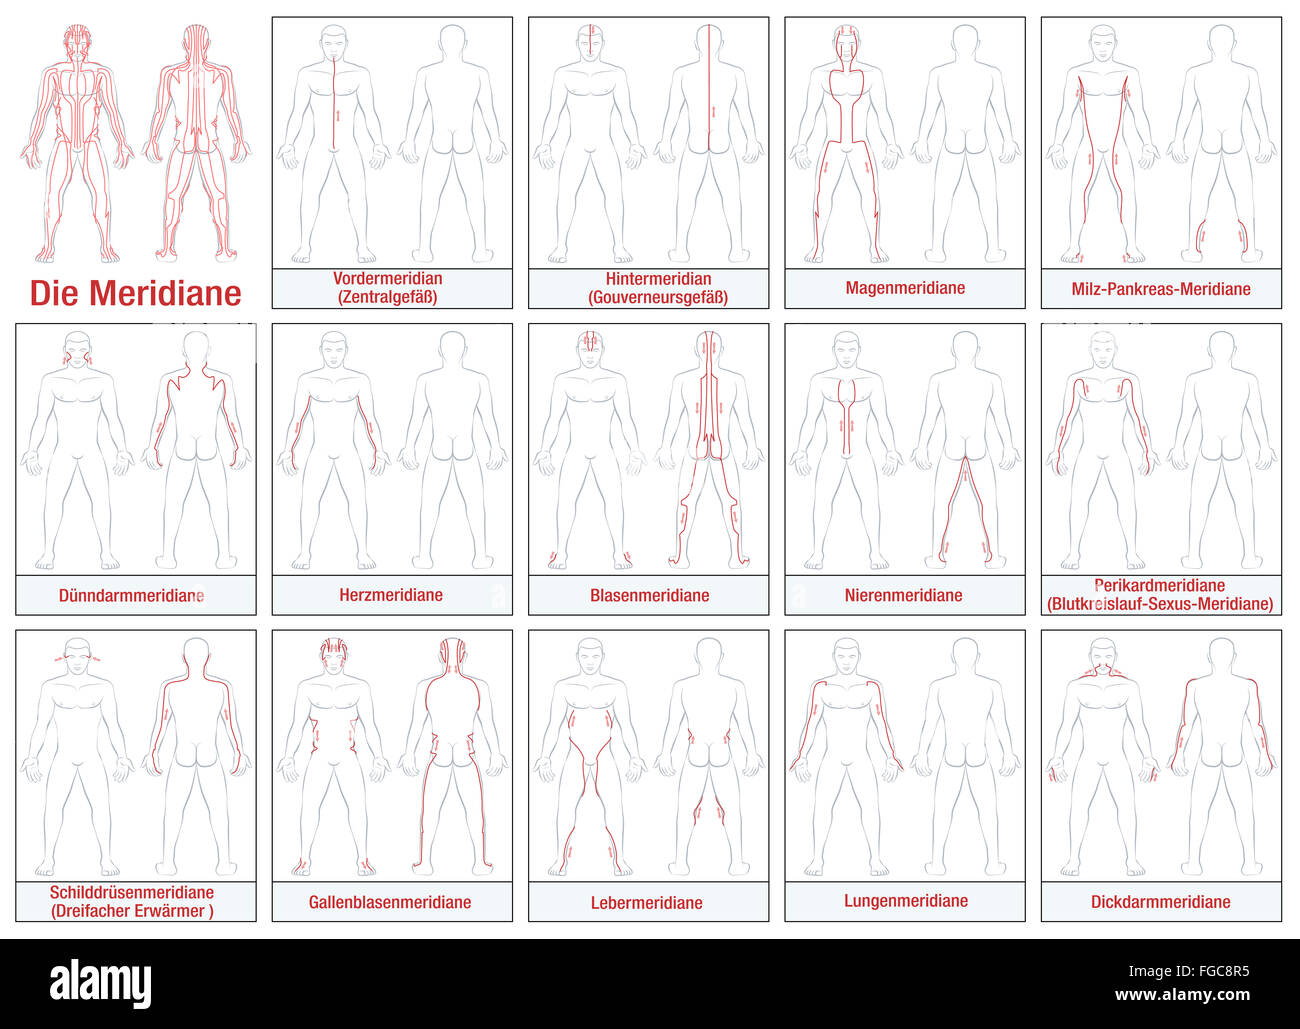 Schematic Body Stock Photos Images Alamy Meridians German Labeling Diagram With Main Acupuncture And Their Directions Of